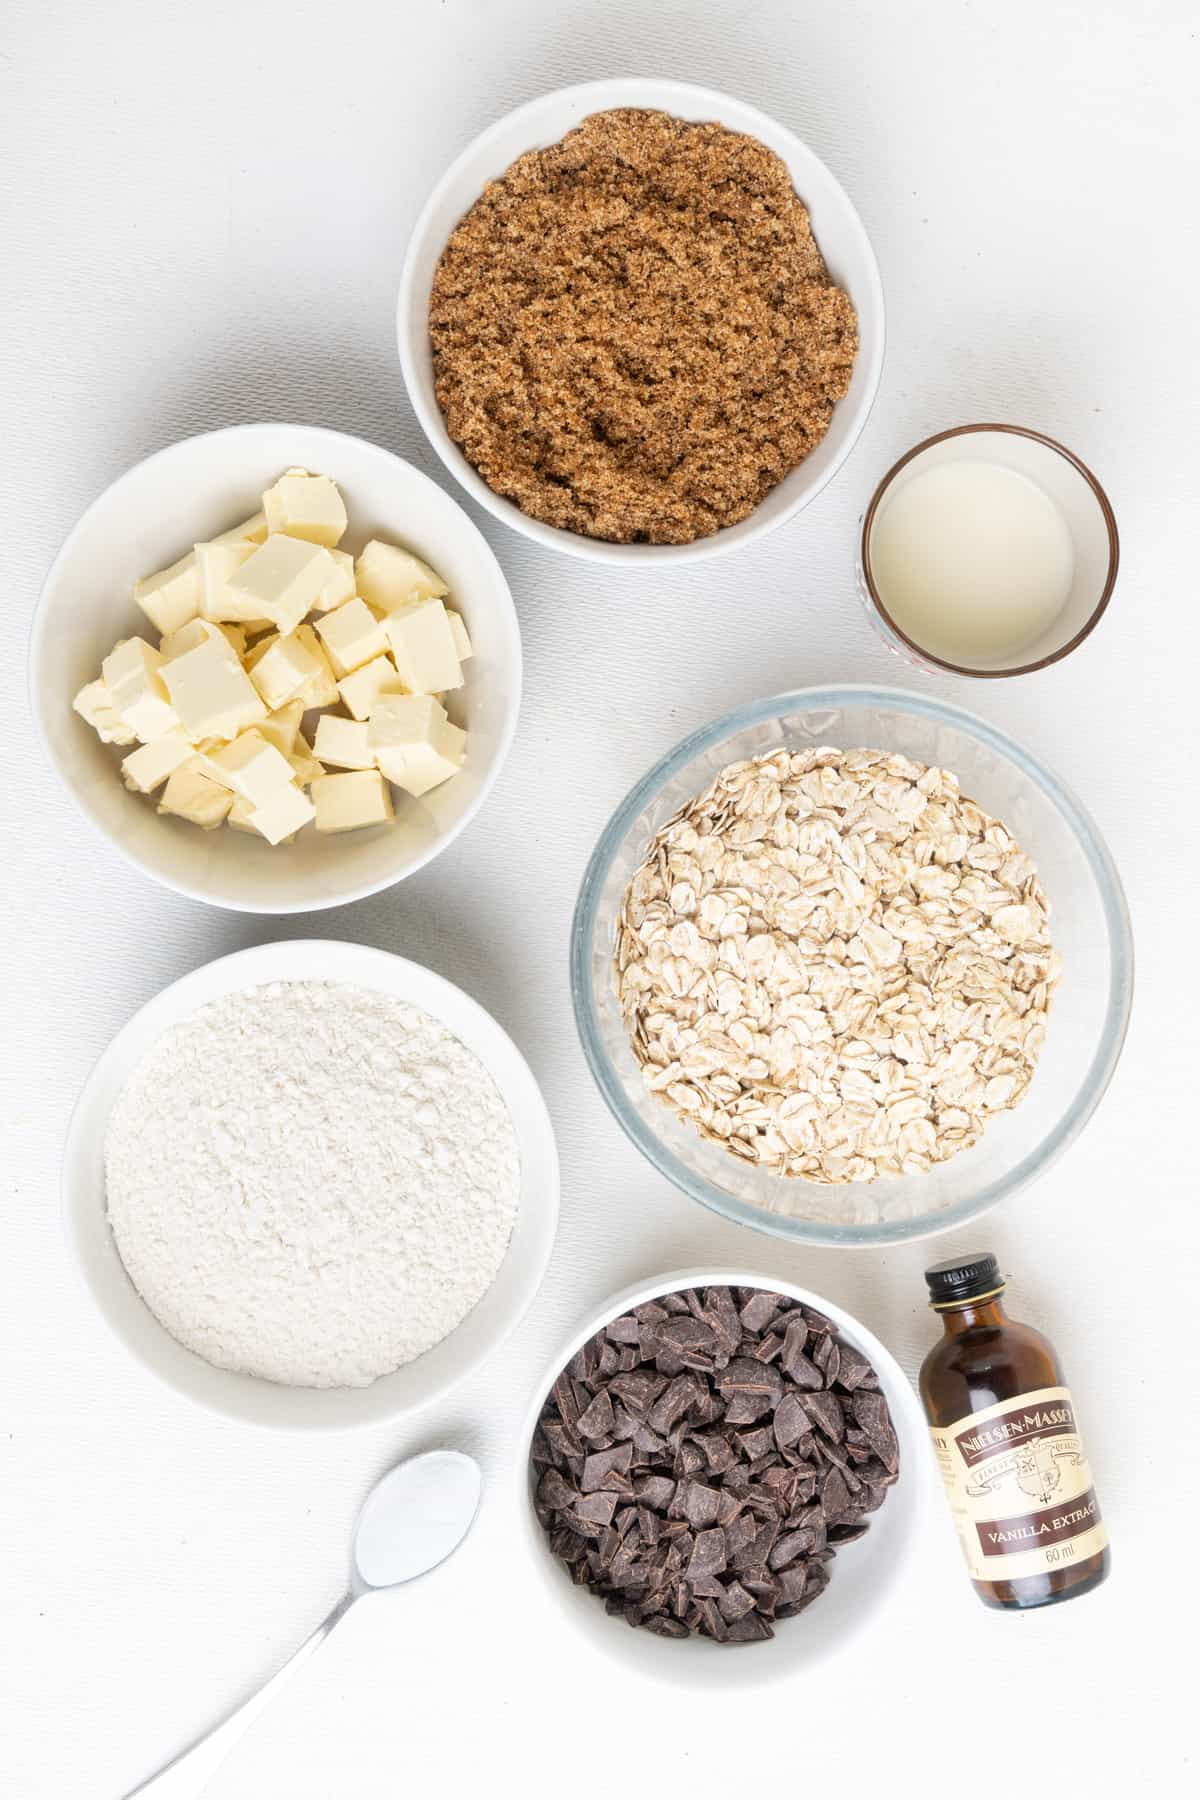 The ingredients for this recipe: Rolled oats, plain flour, soft brown sugar, cubes of vegan butter, oat milk, chocolate chips, baking powder and vanilla extract.